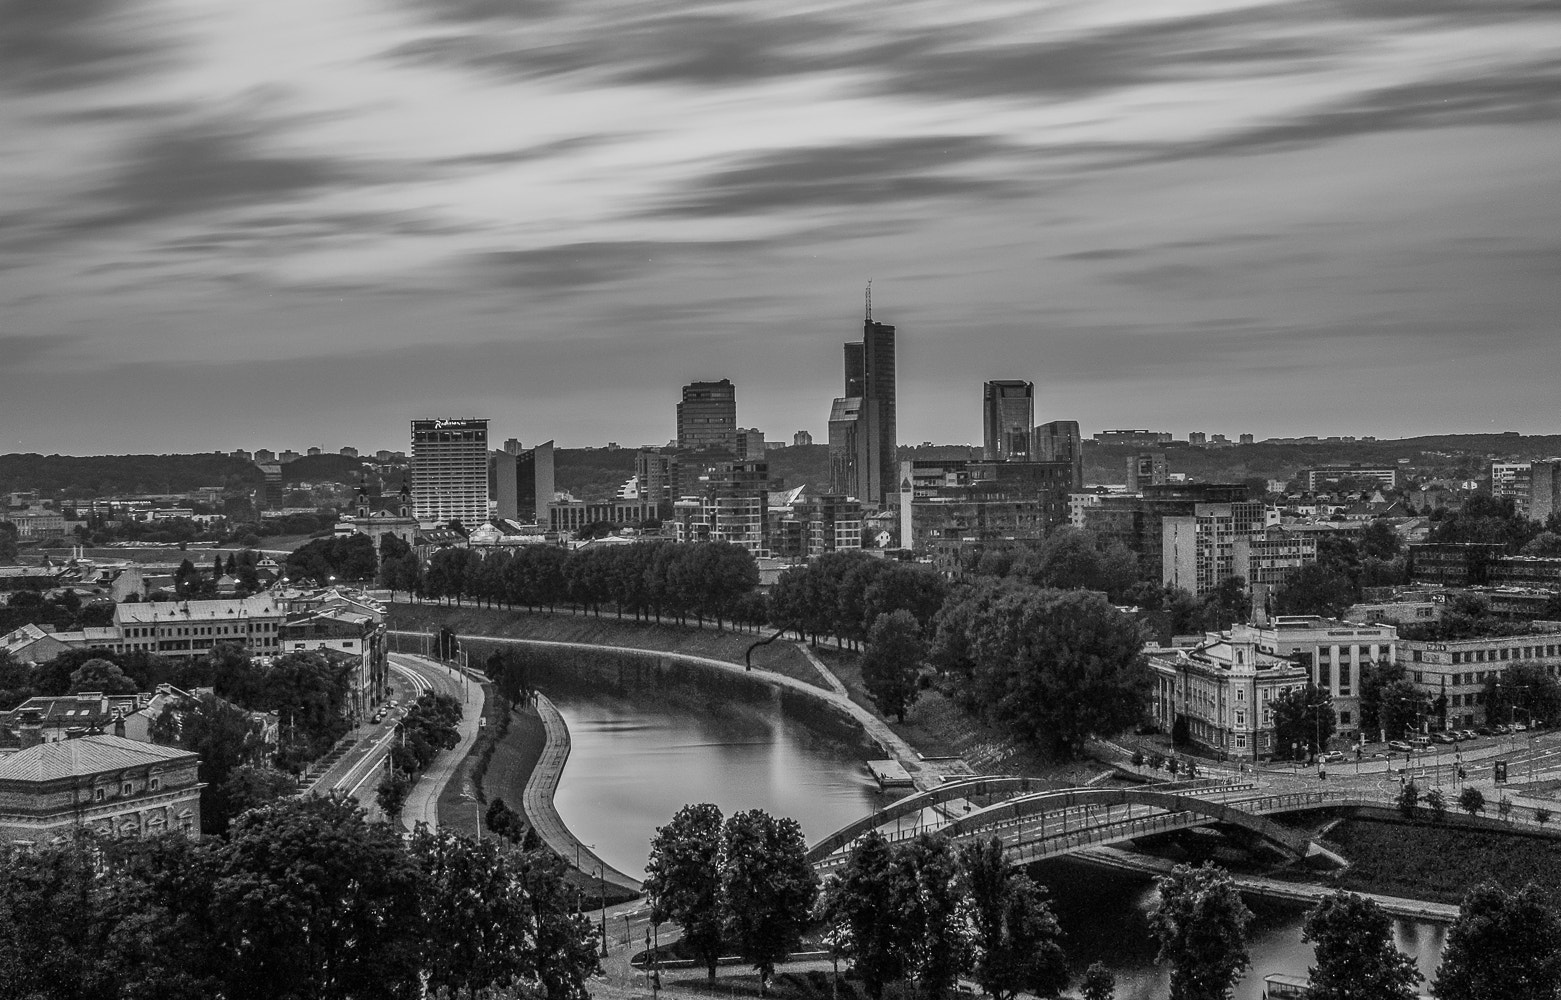 Photograph Windy Vilnius by Norbert Durko on 500px